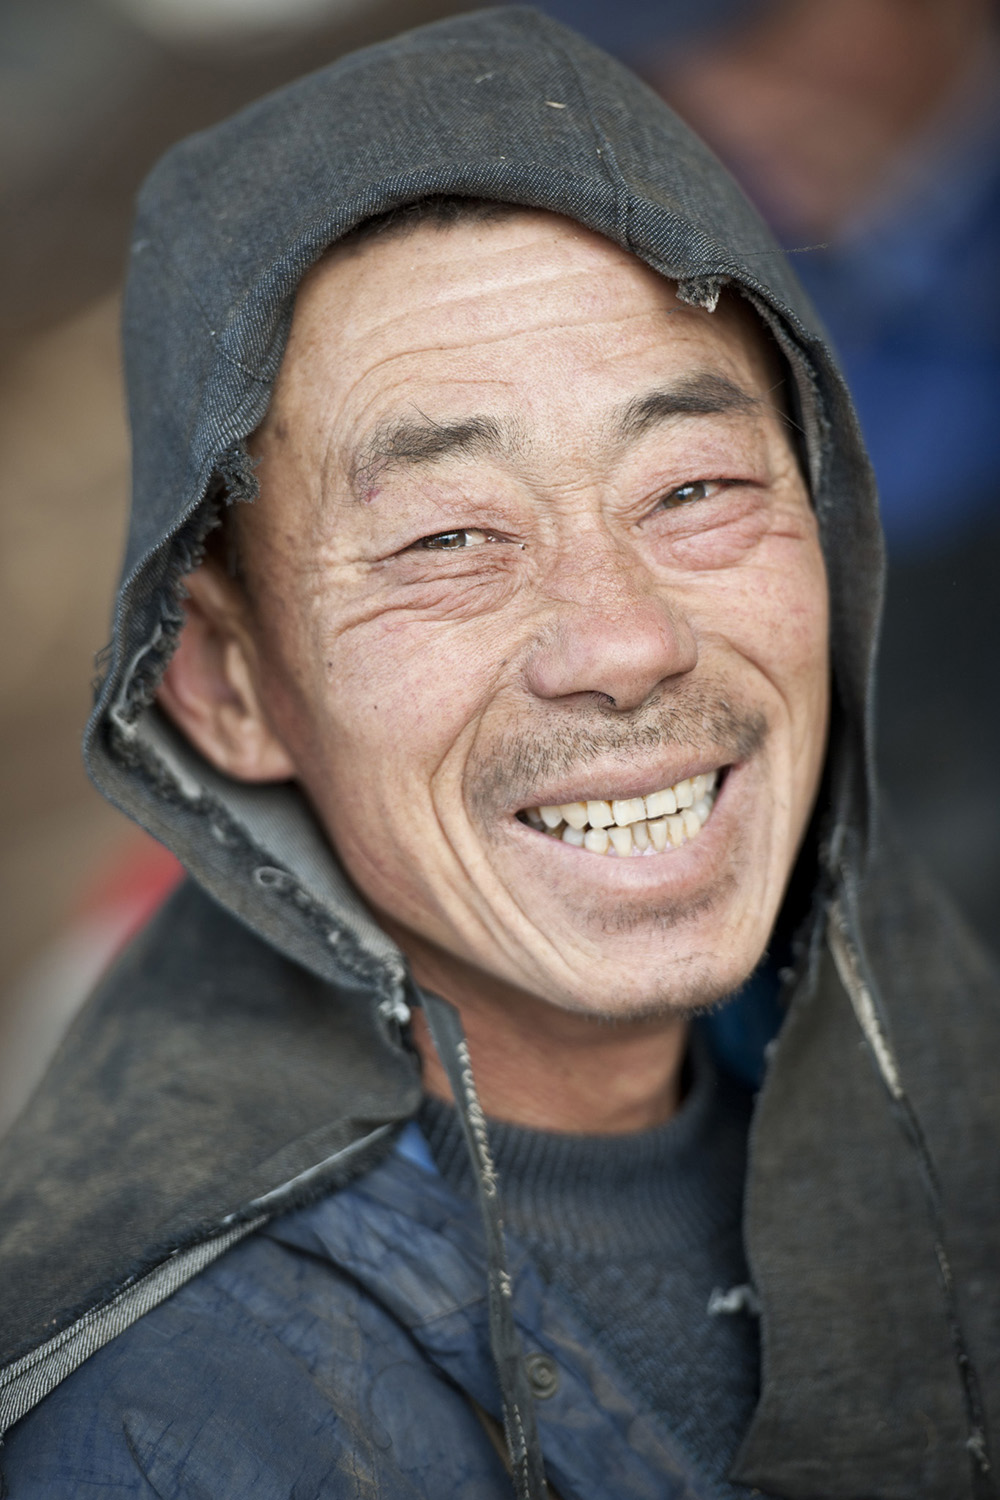 image of AARONTAIT COPYRIGHTED 2014 298 TRAVEL PHOTOGRAPHER ASIA REPORTAGE EDITORIAL STORY HUMANS LIFE EARTH TRAVELER EXPLORE CULTURE PEOPLE COUNTRY NATIONALITY DOCUMENTARY CHINA WORKER FARM